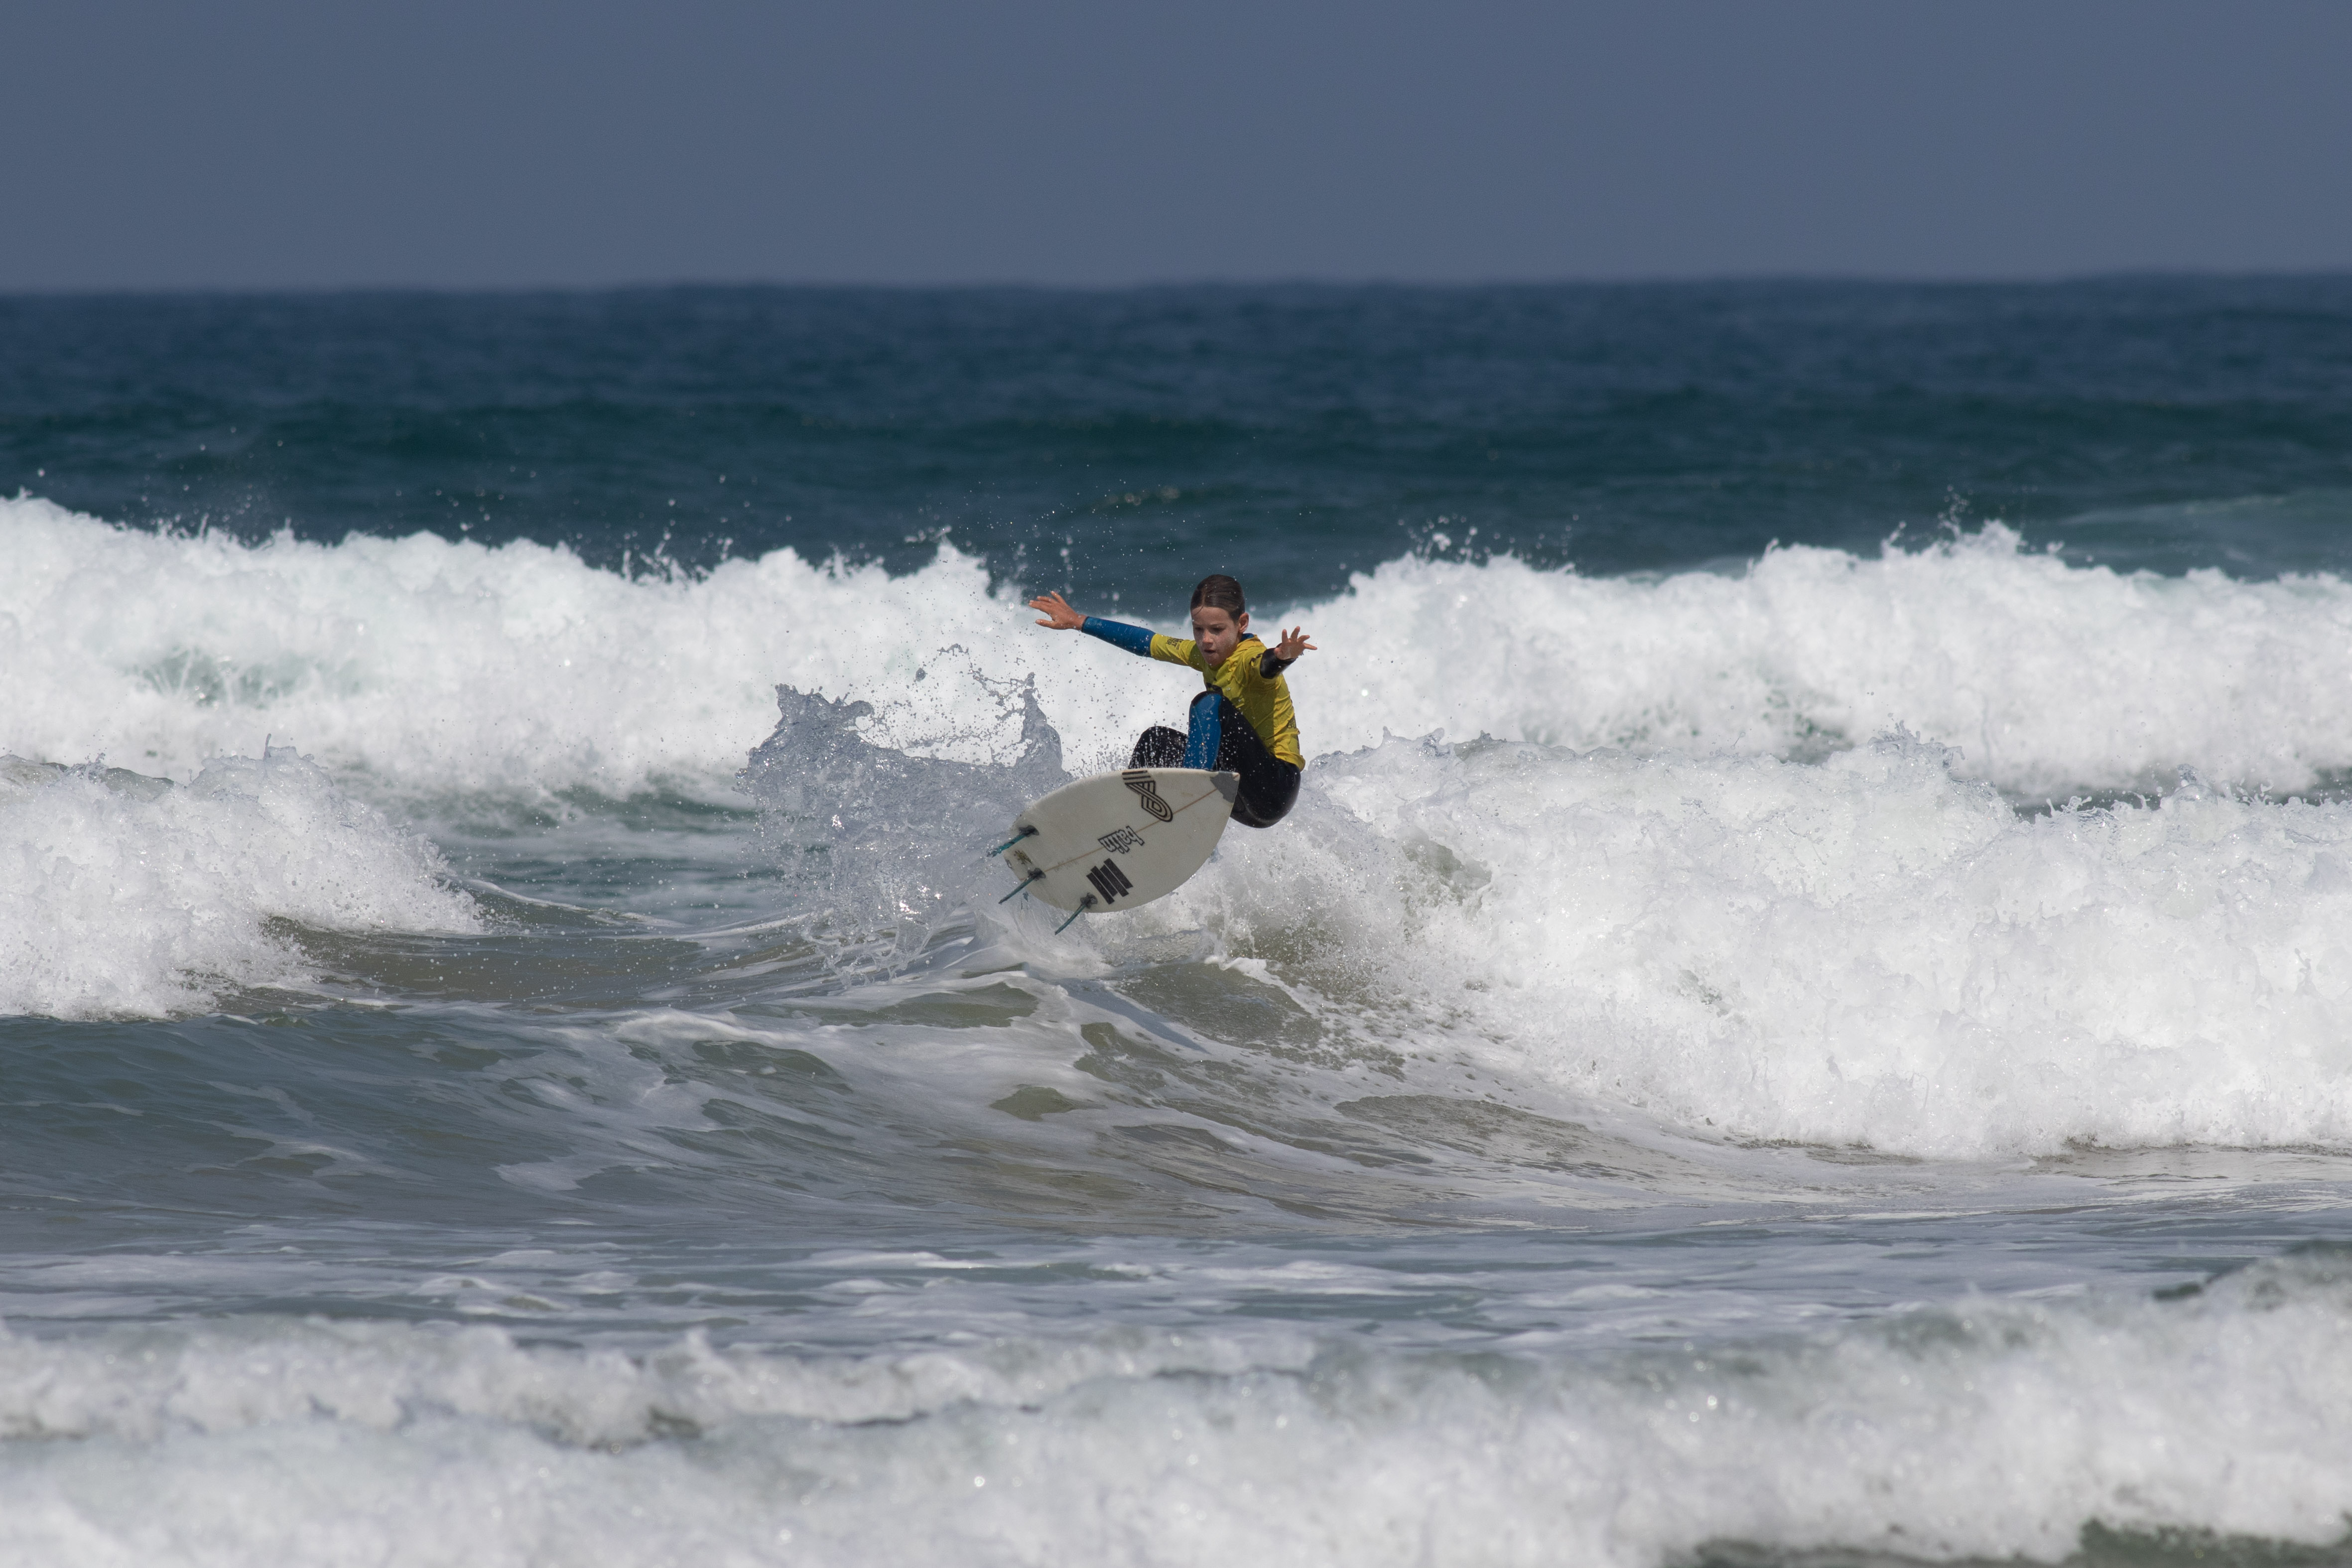 Jarvis Barrow Woolworths Surfer Grom Comp2019 Zl 014